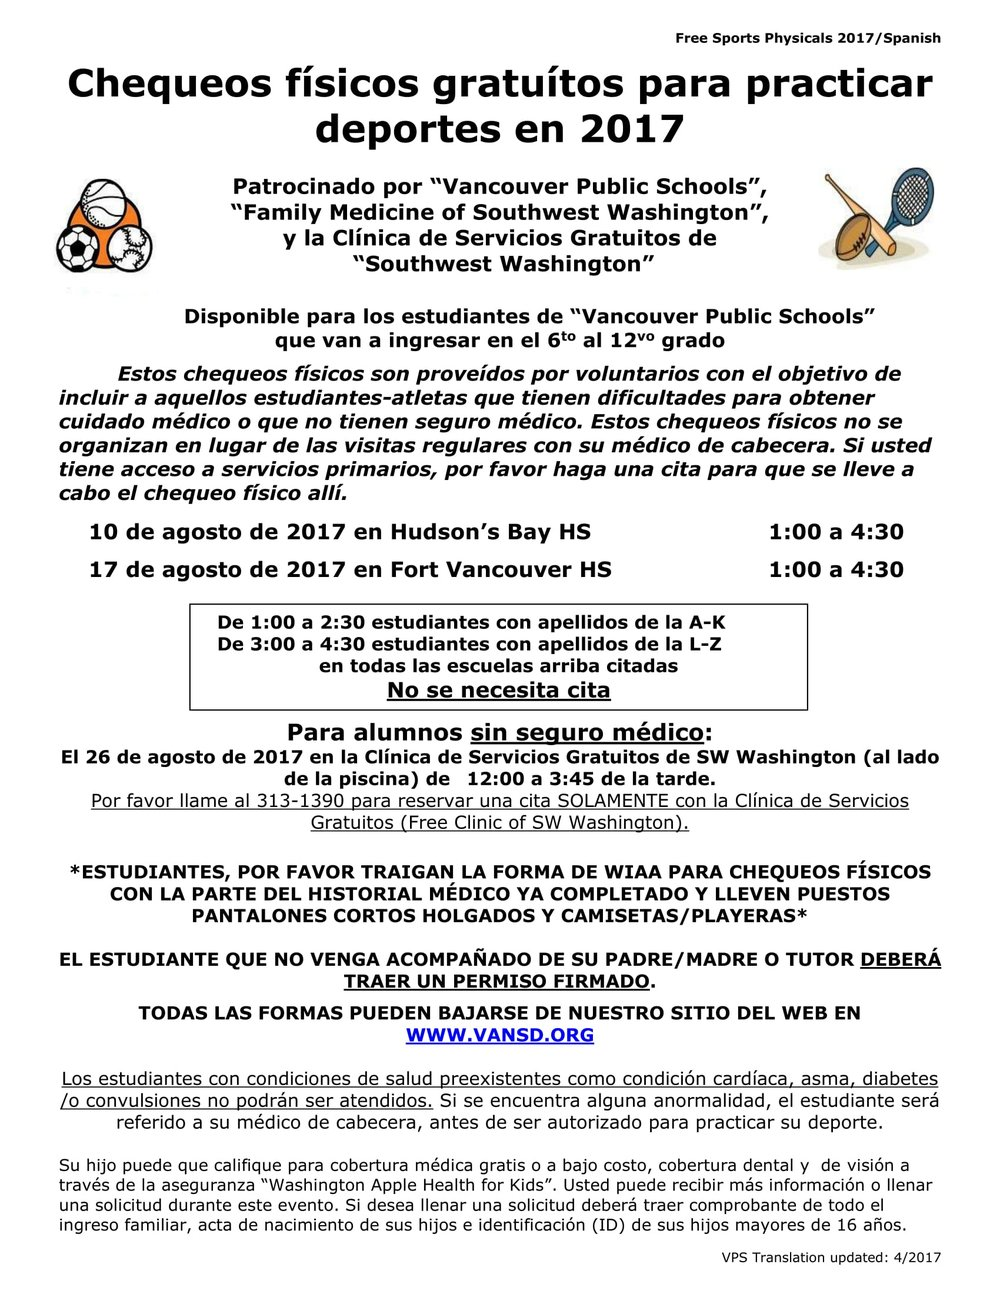 Free Sports Physicals In Vancouver 211info